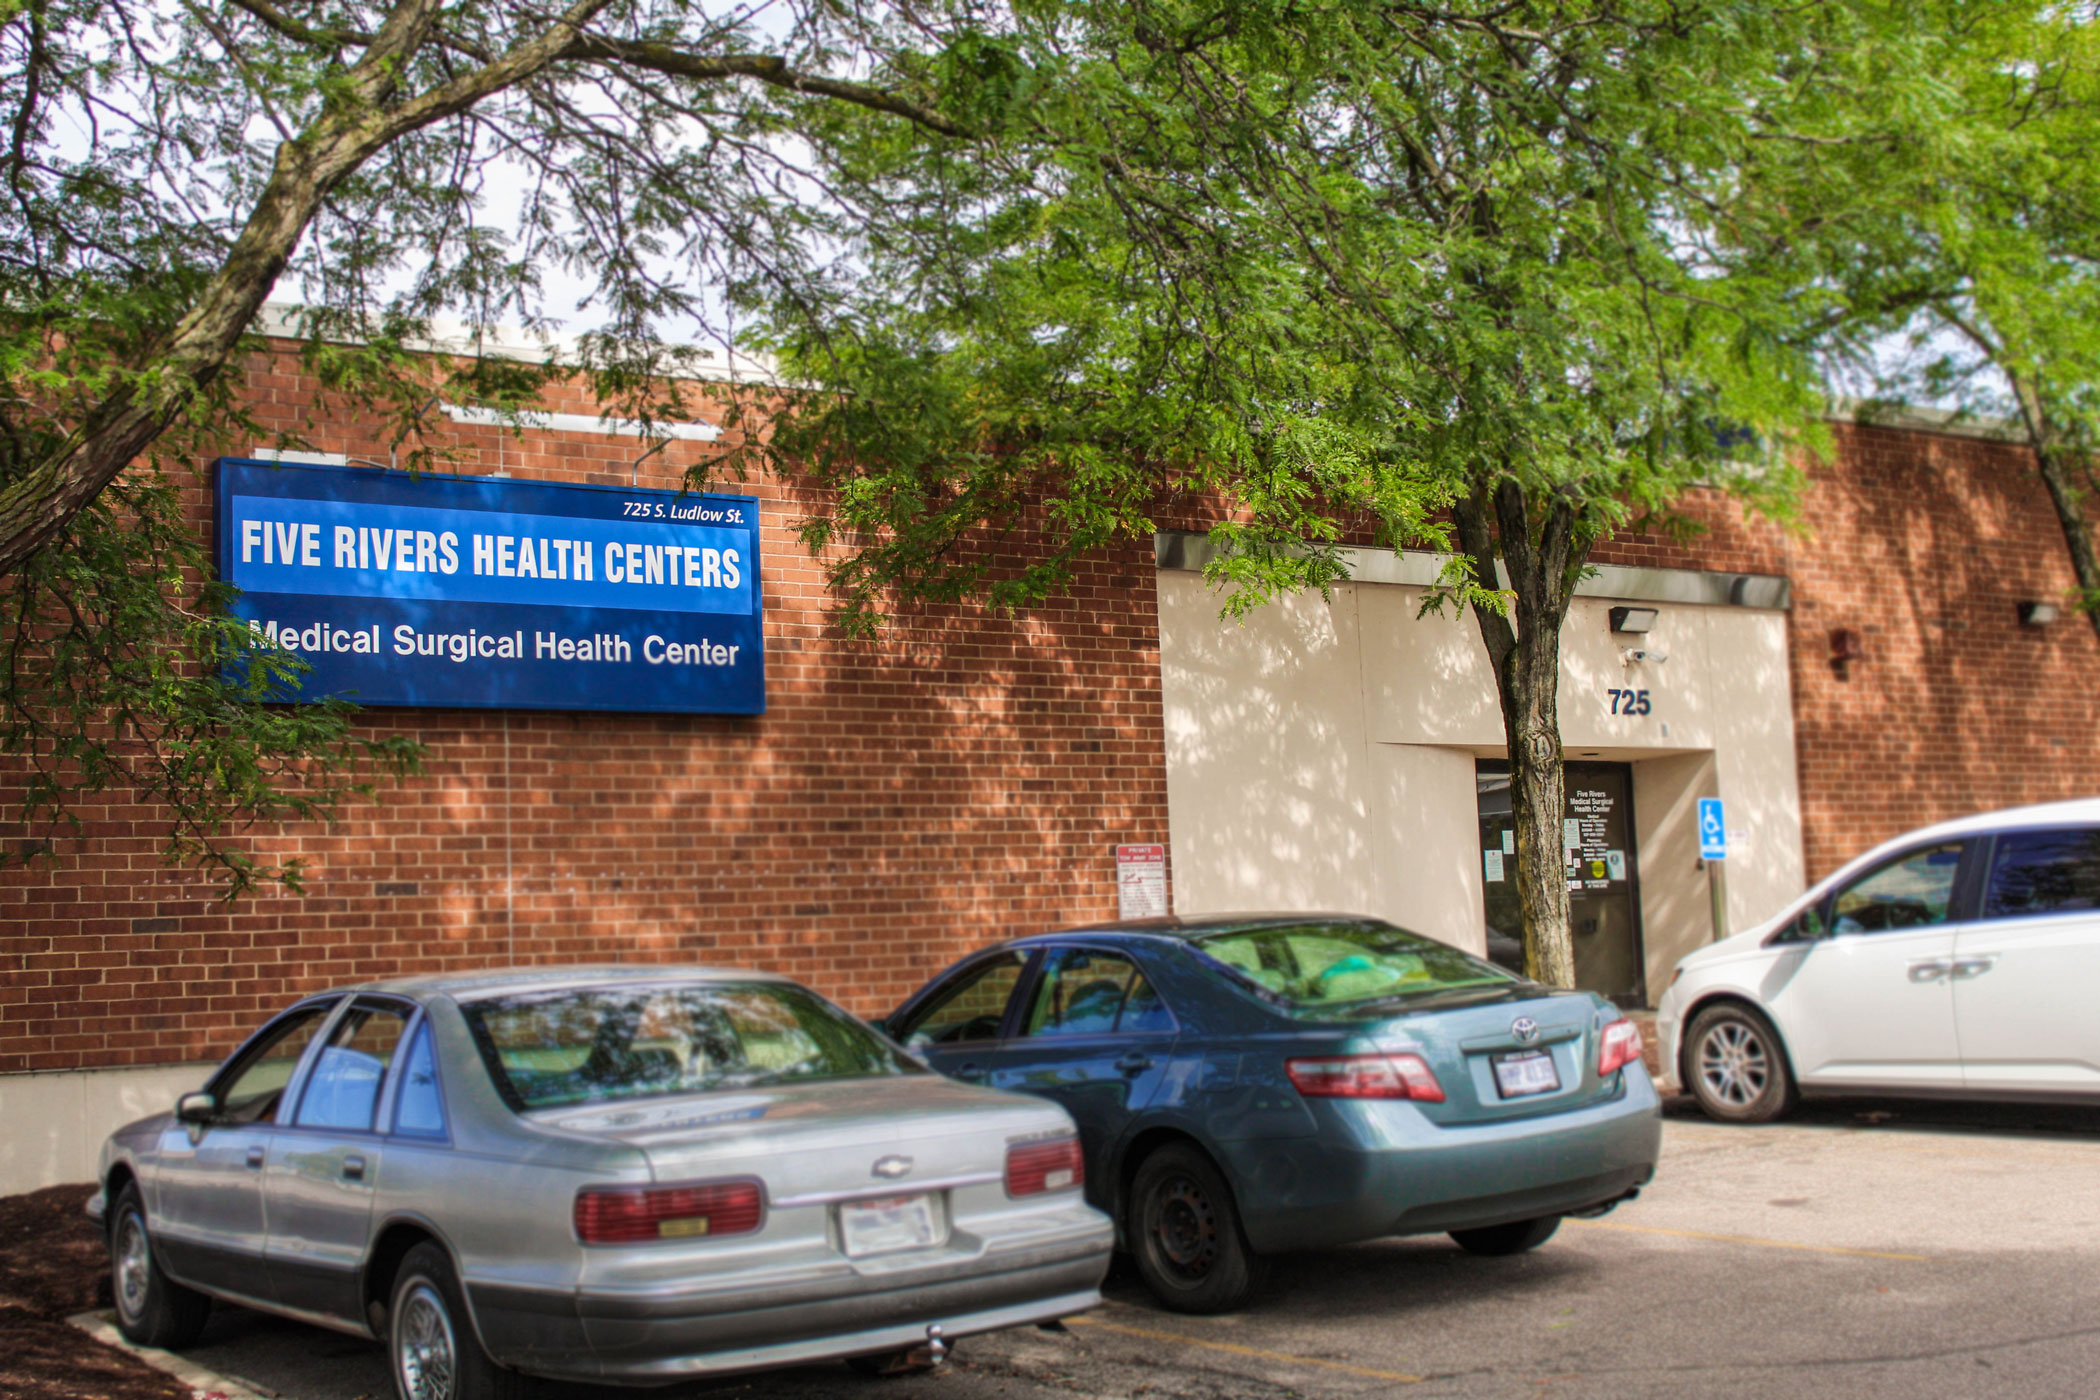 Medical Surgical Health Center